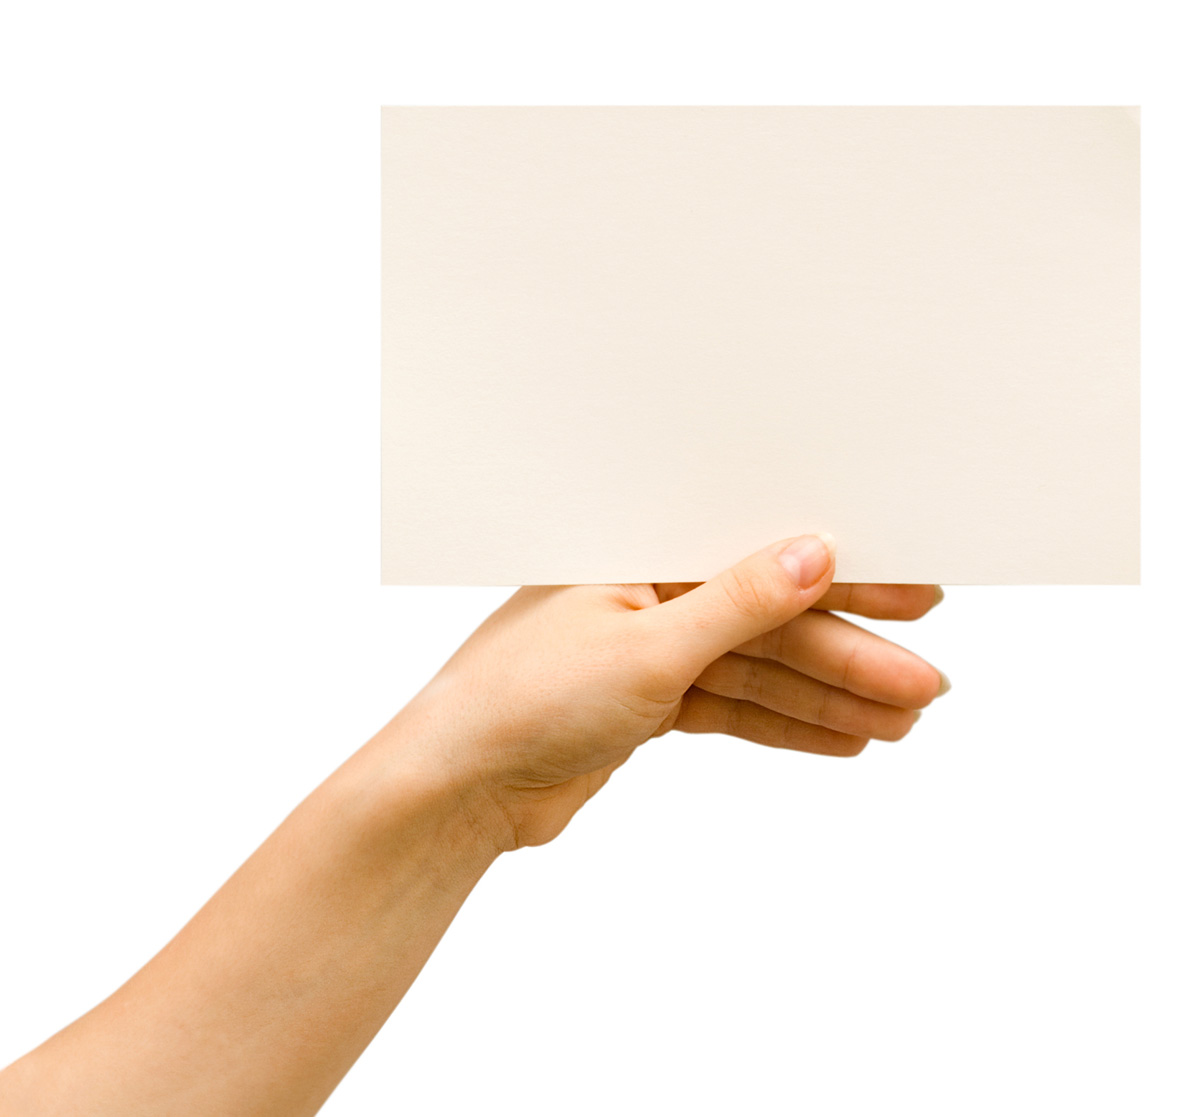 Holding blank card 26069